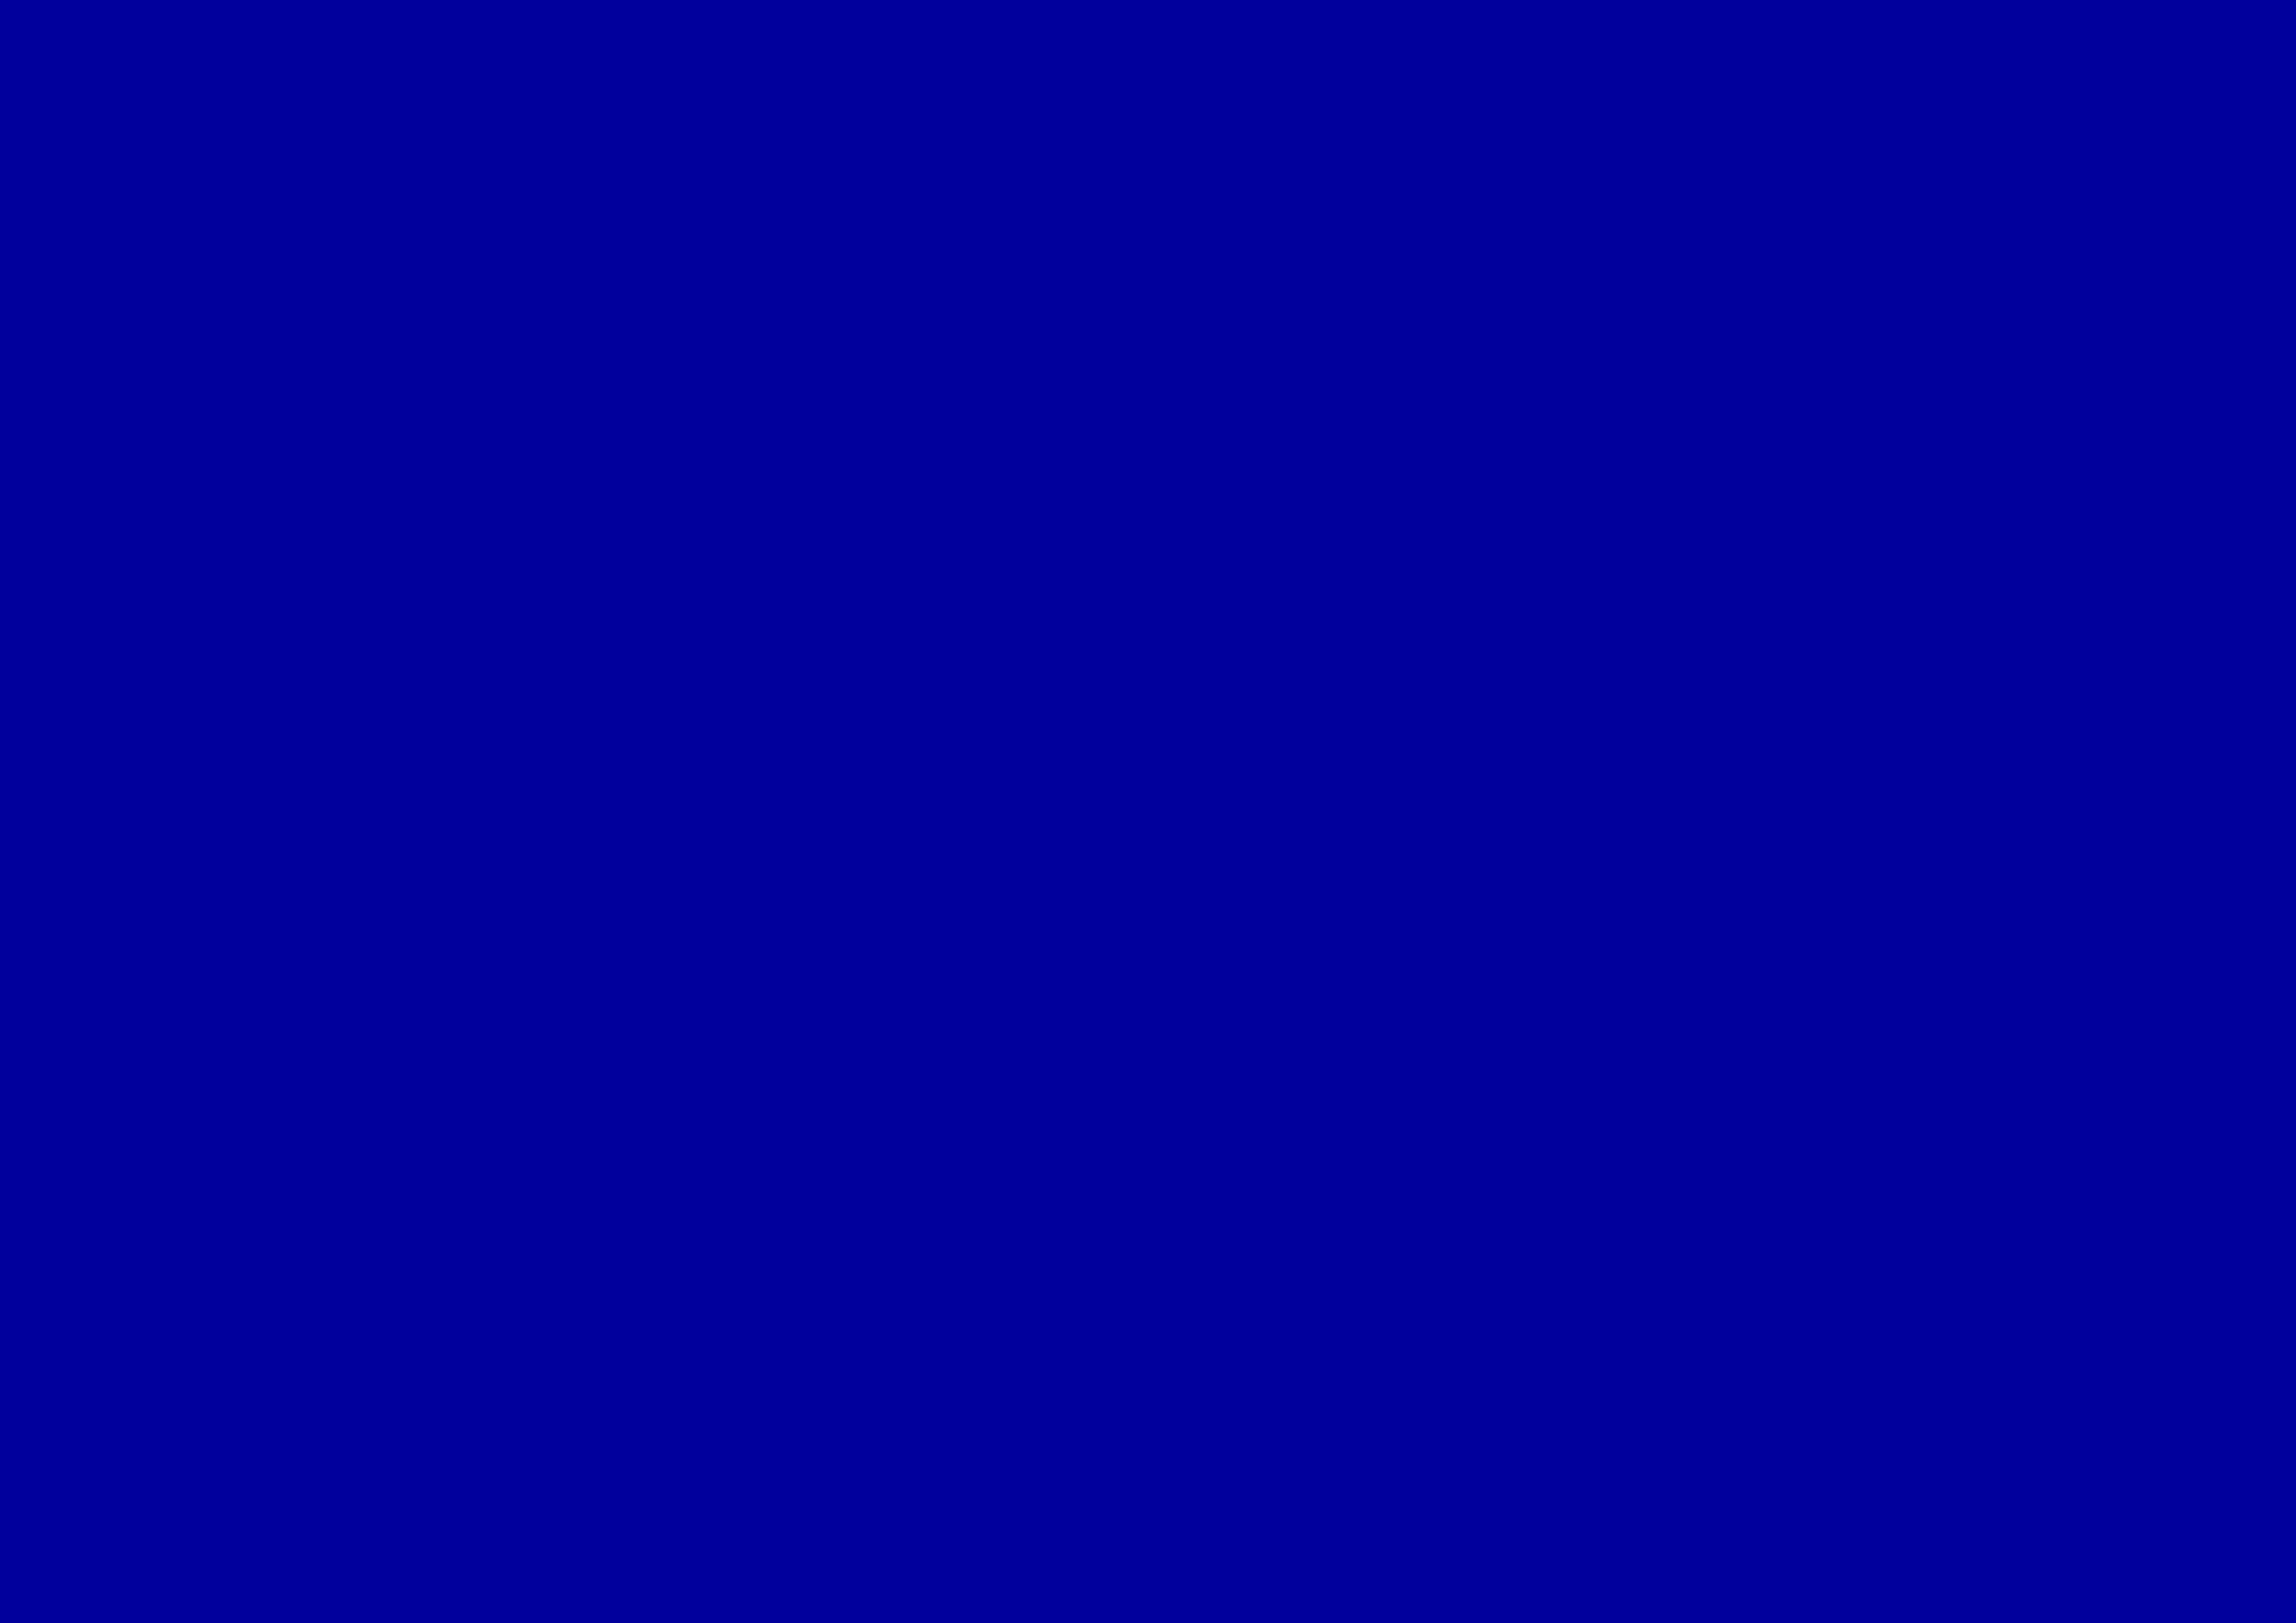 3508x2480 Duke Blue Solid Color Background